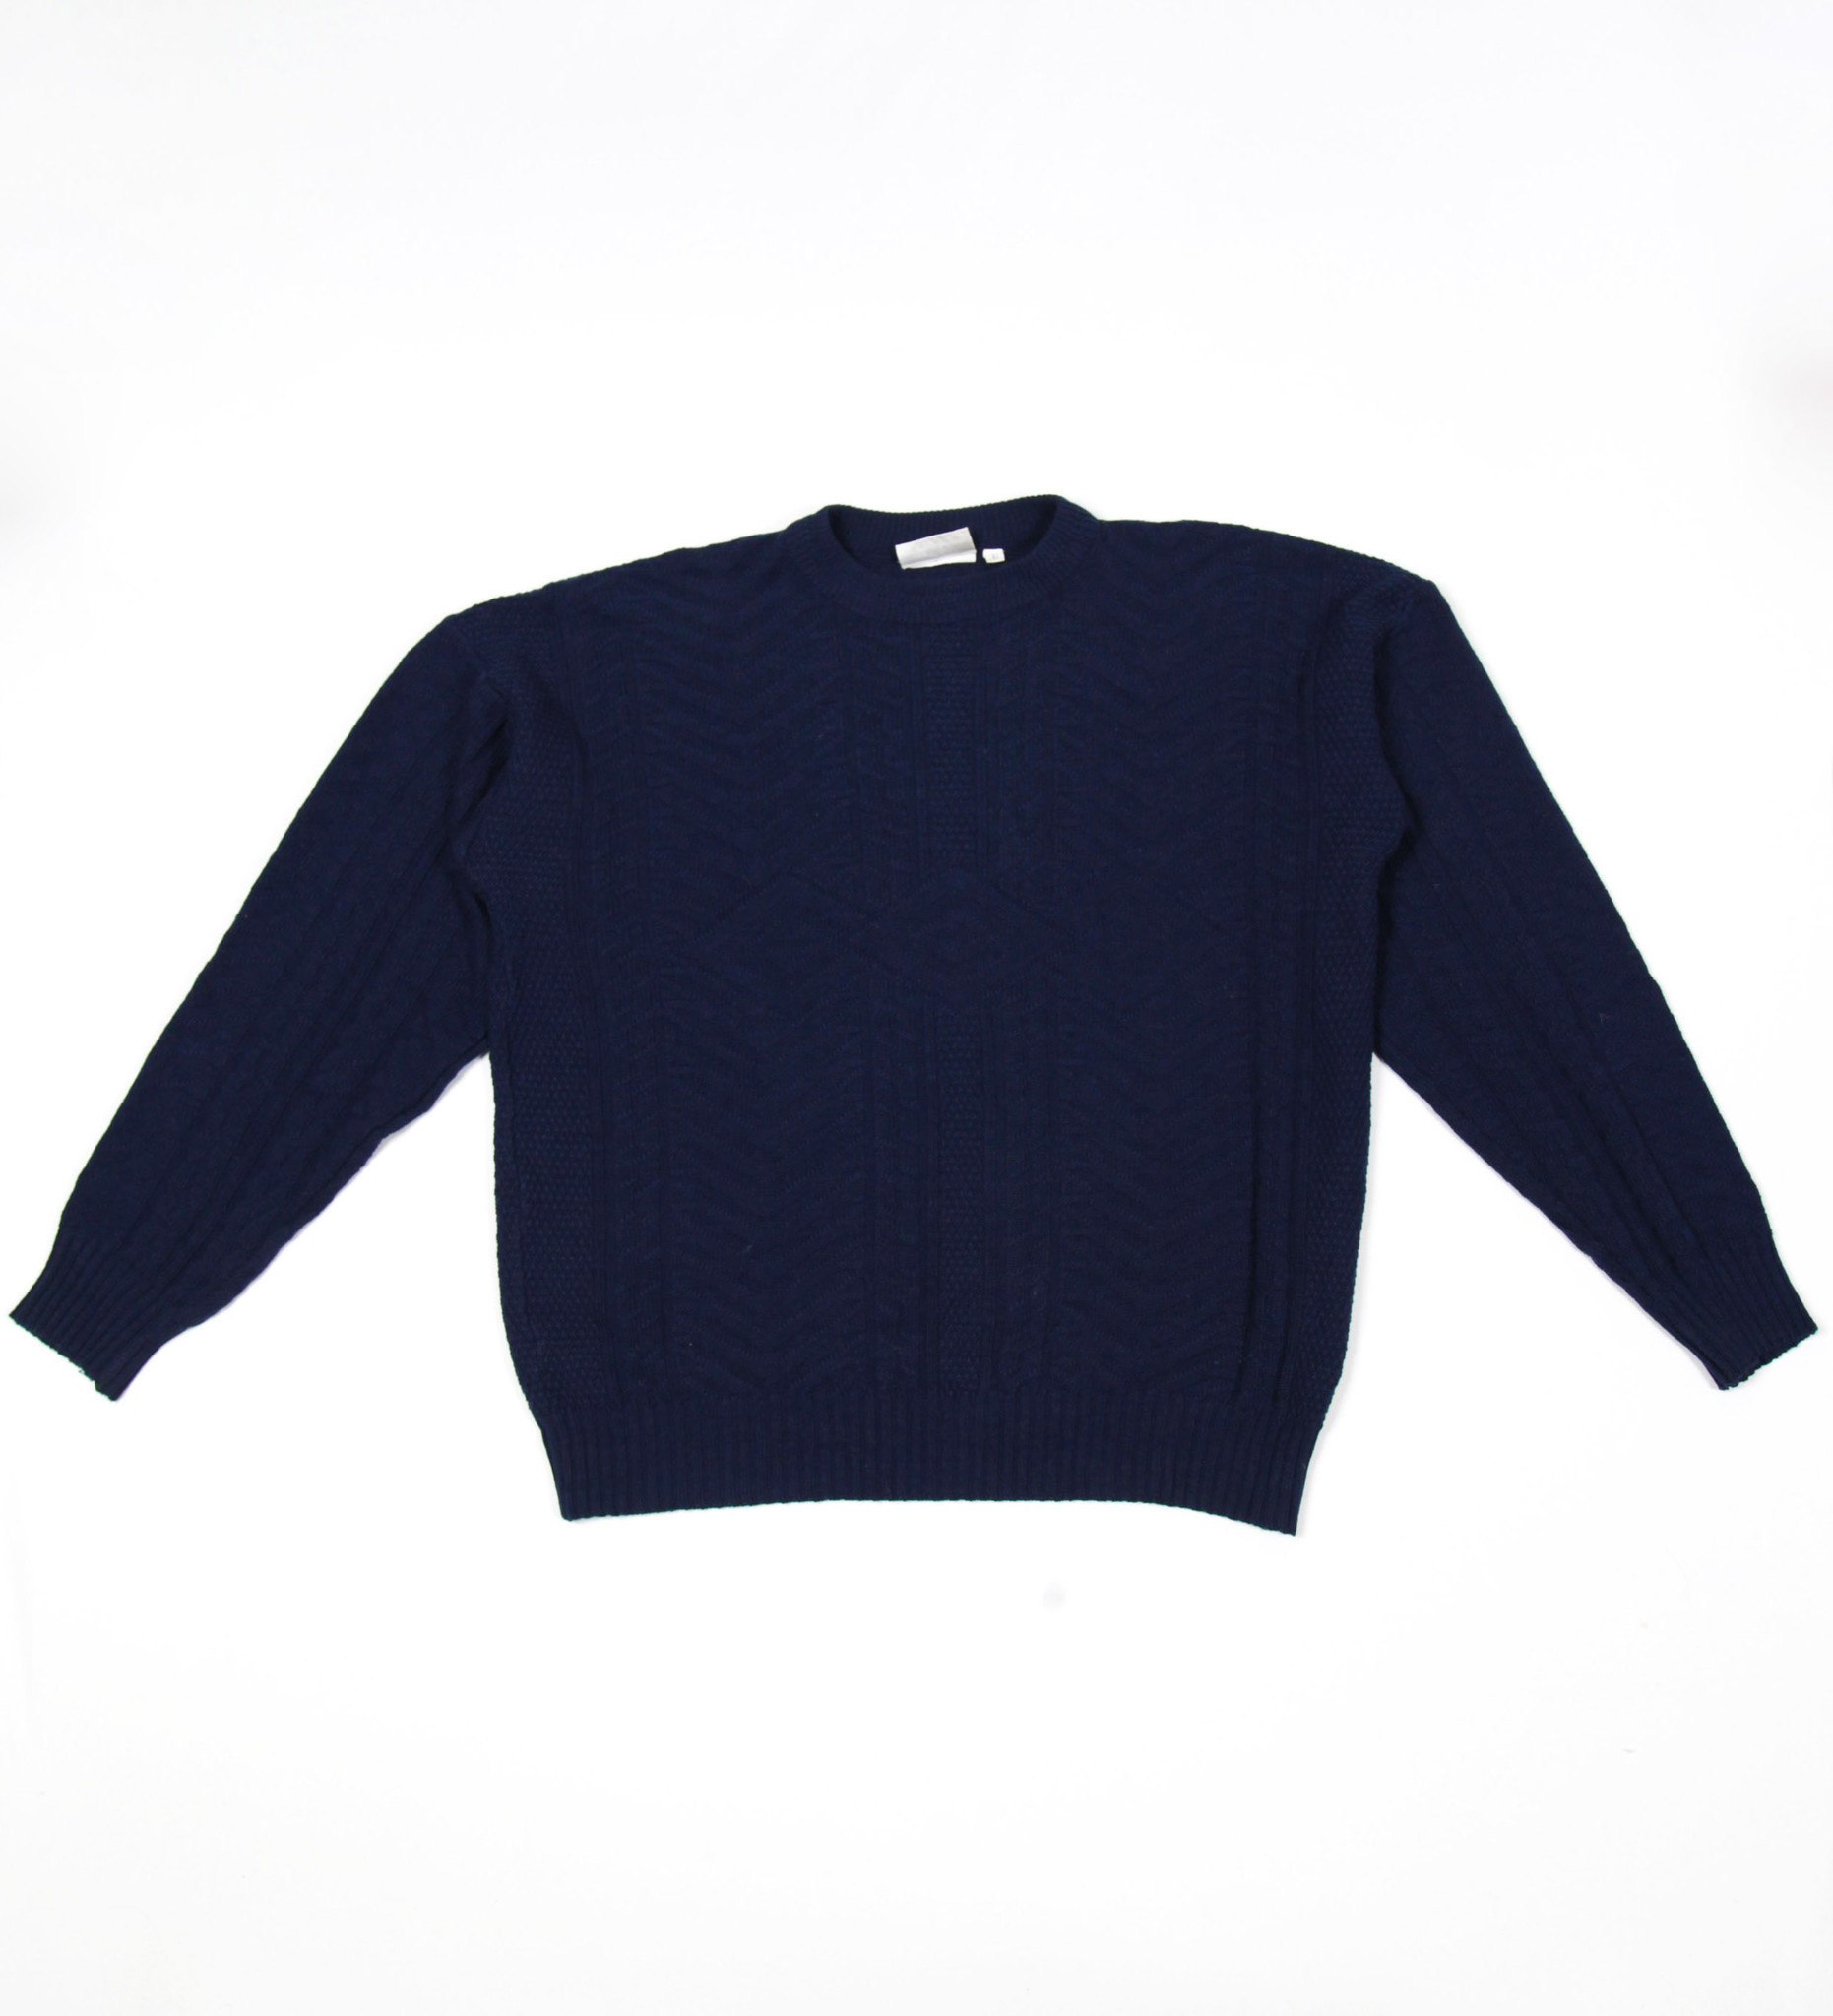 Navy classic cable jumper